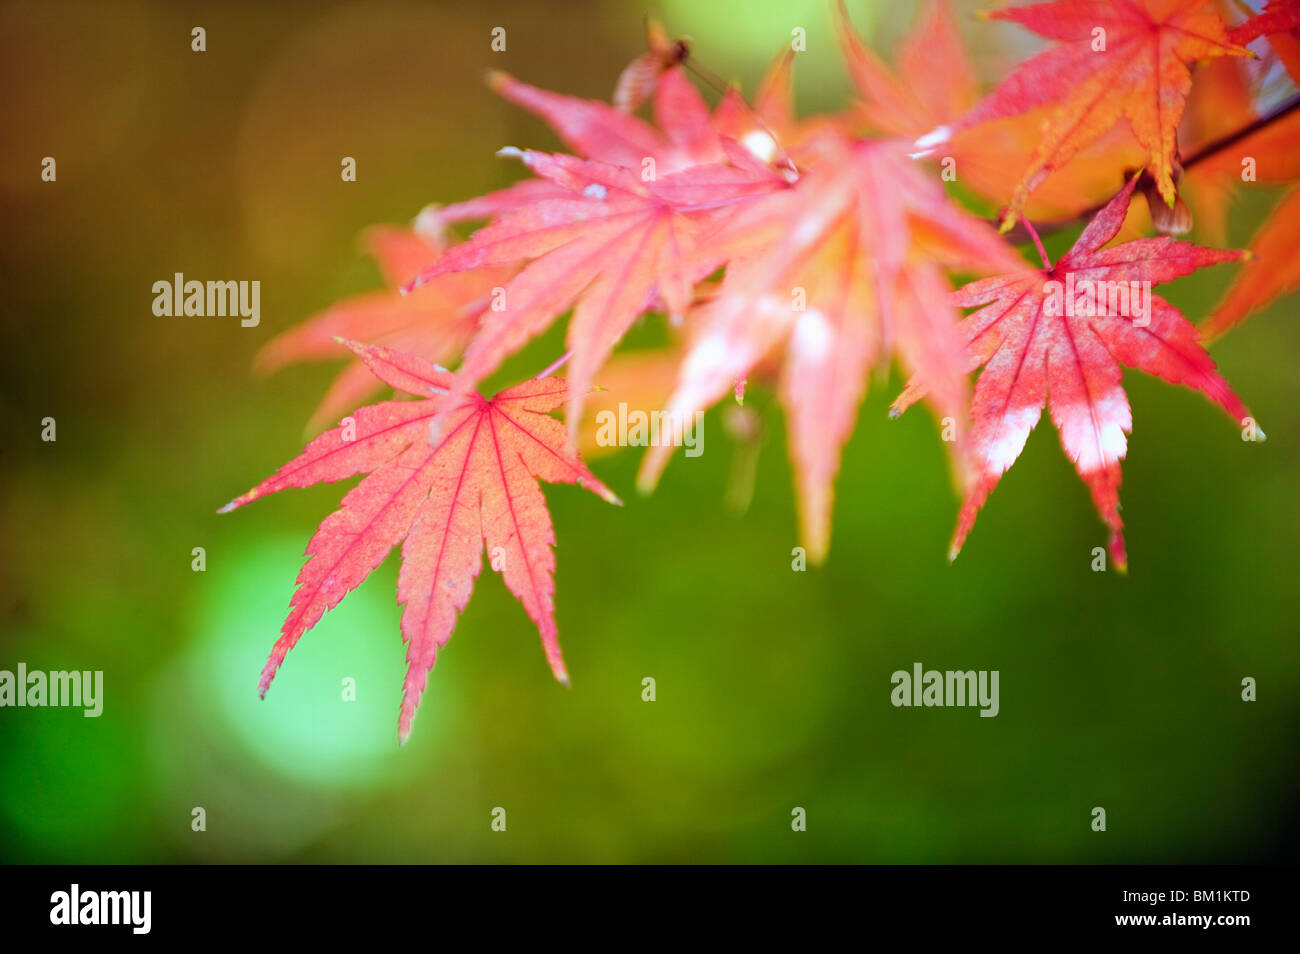 Autumn maple leaves, Sagano area, Kyoto, Japan, Asia - Stock Image